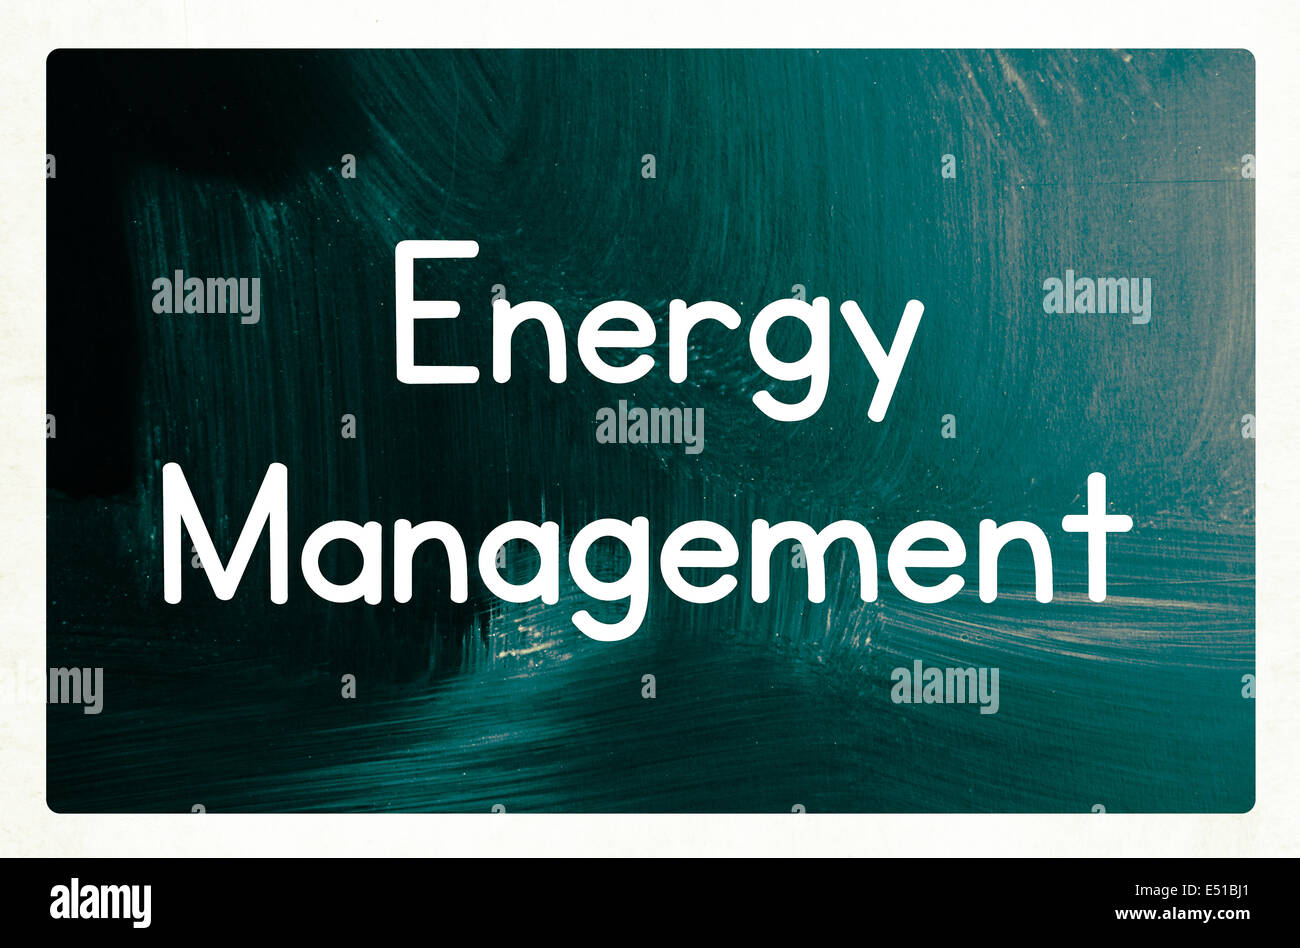 energy management concept - Stock Image